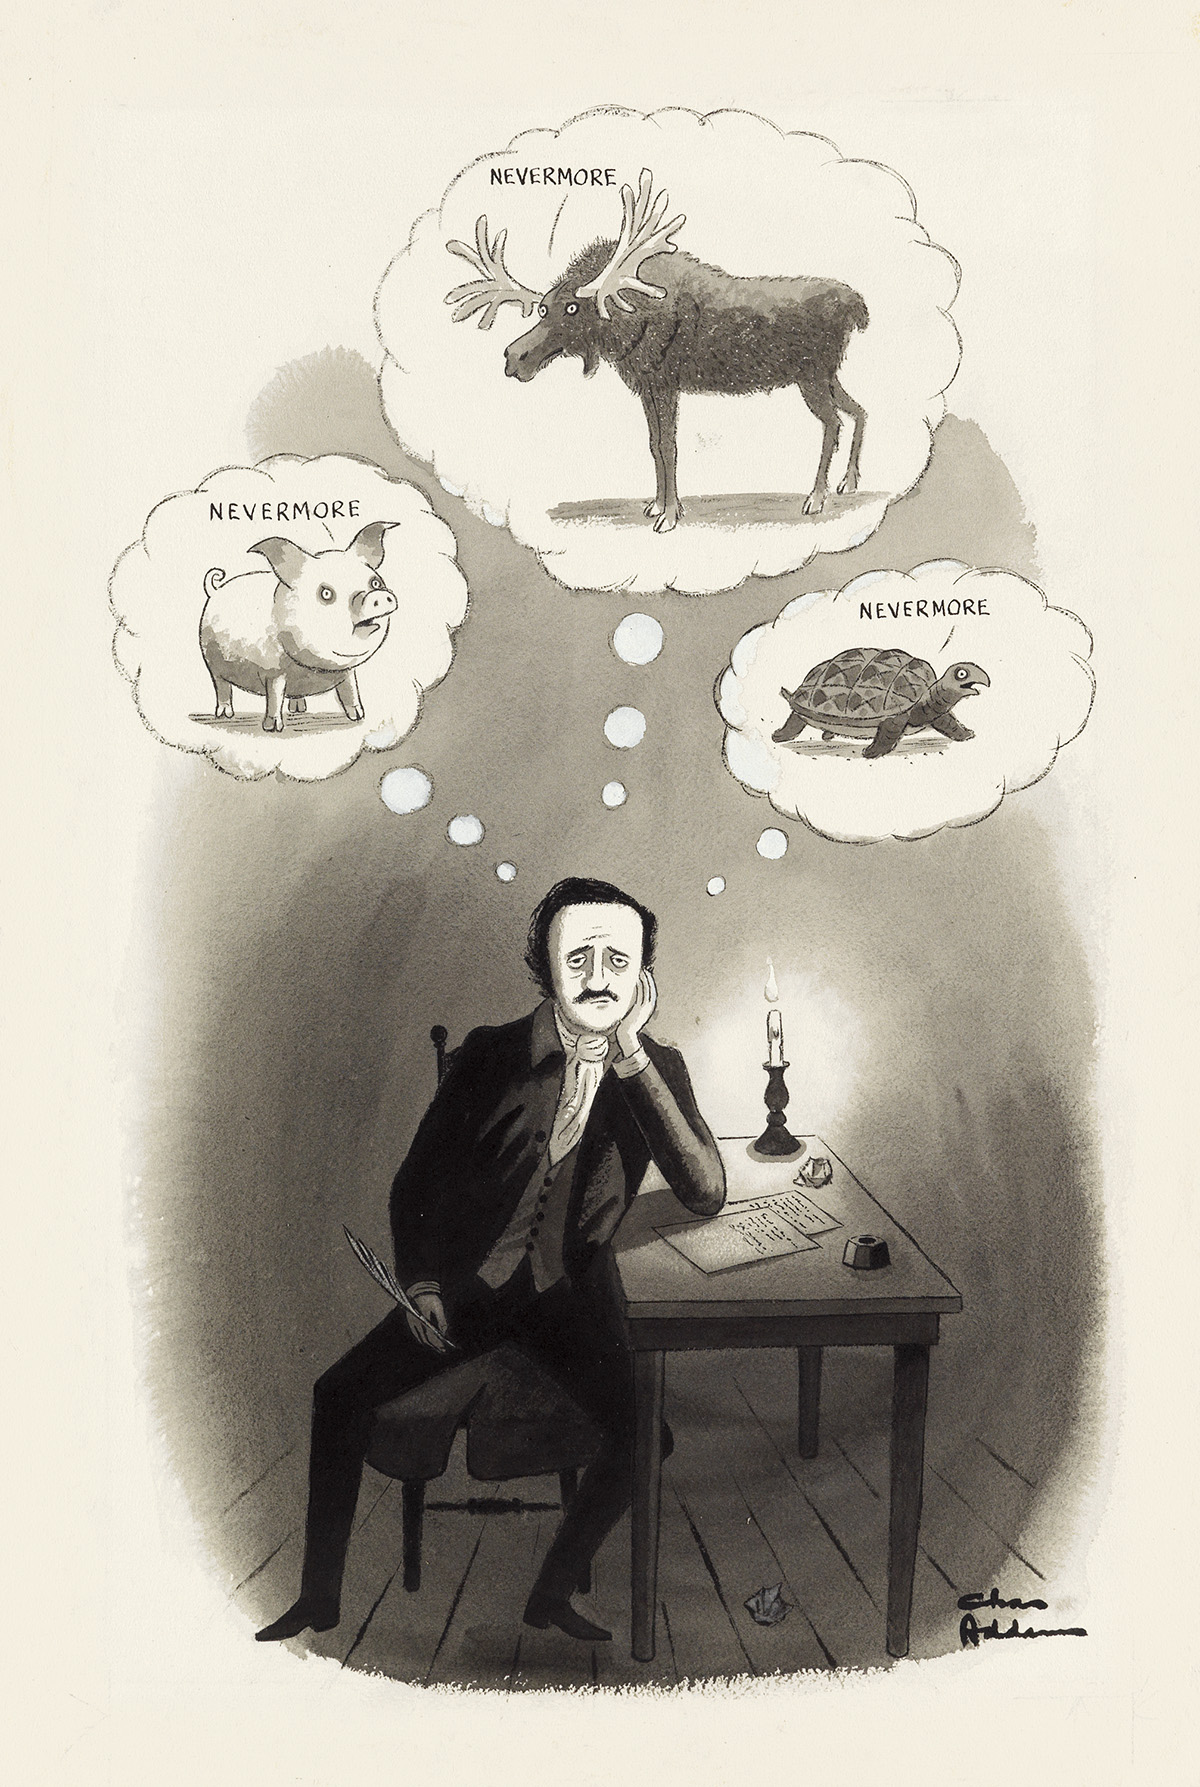 THE NEW YORKER. CHARLES ADDAMS. Nevermore.